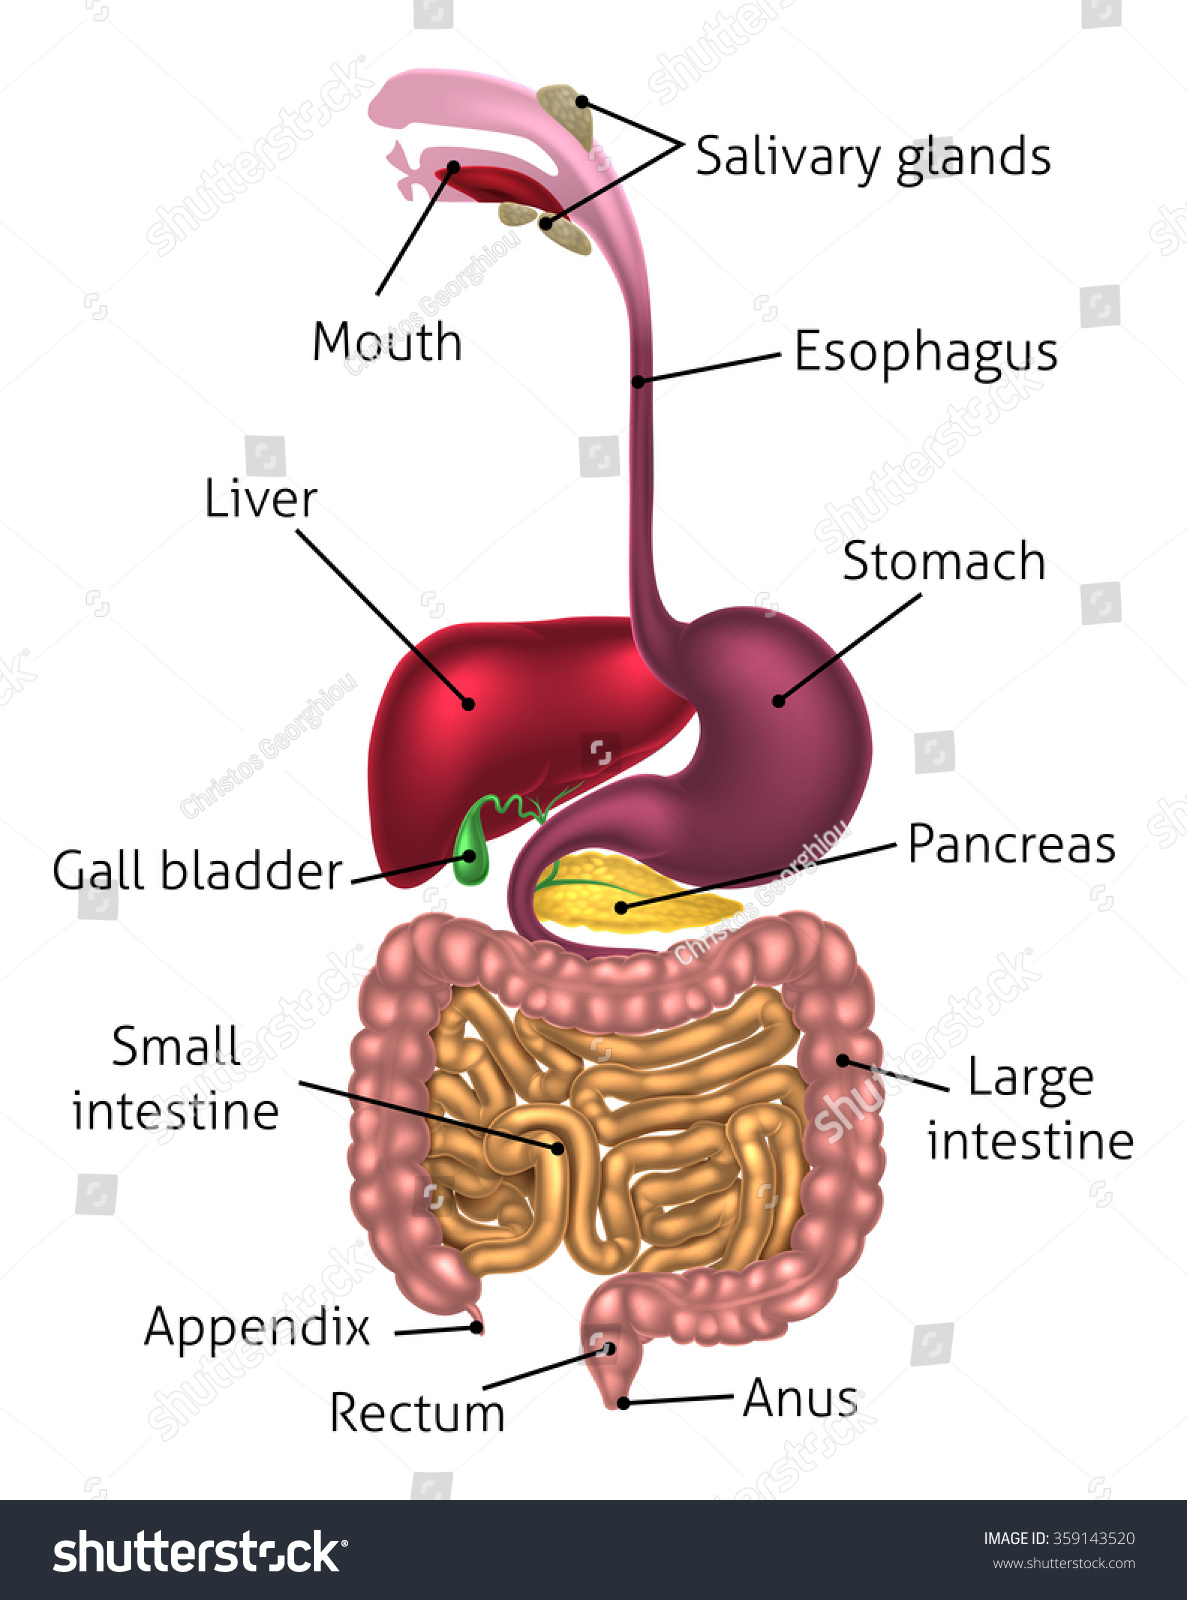 digestive system prezi script What are the primary functions of the respiratory system how does the digestive system work with the //prezicom/tifsrm2flhtd/digestive-respiratory-and.